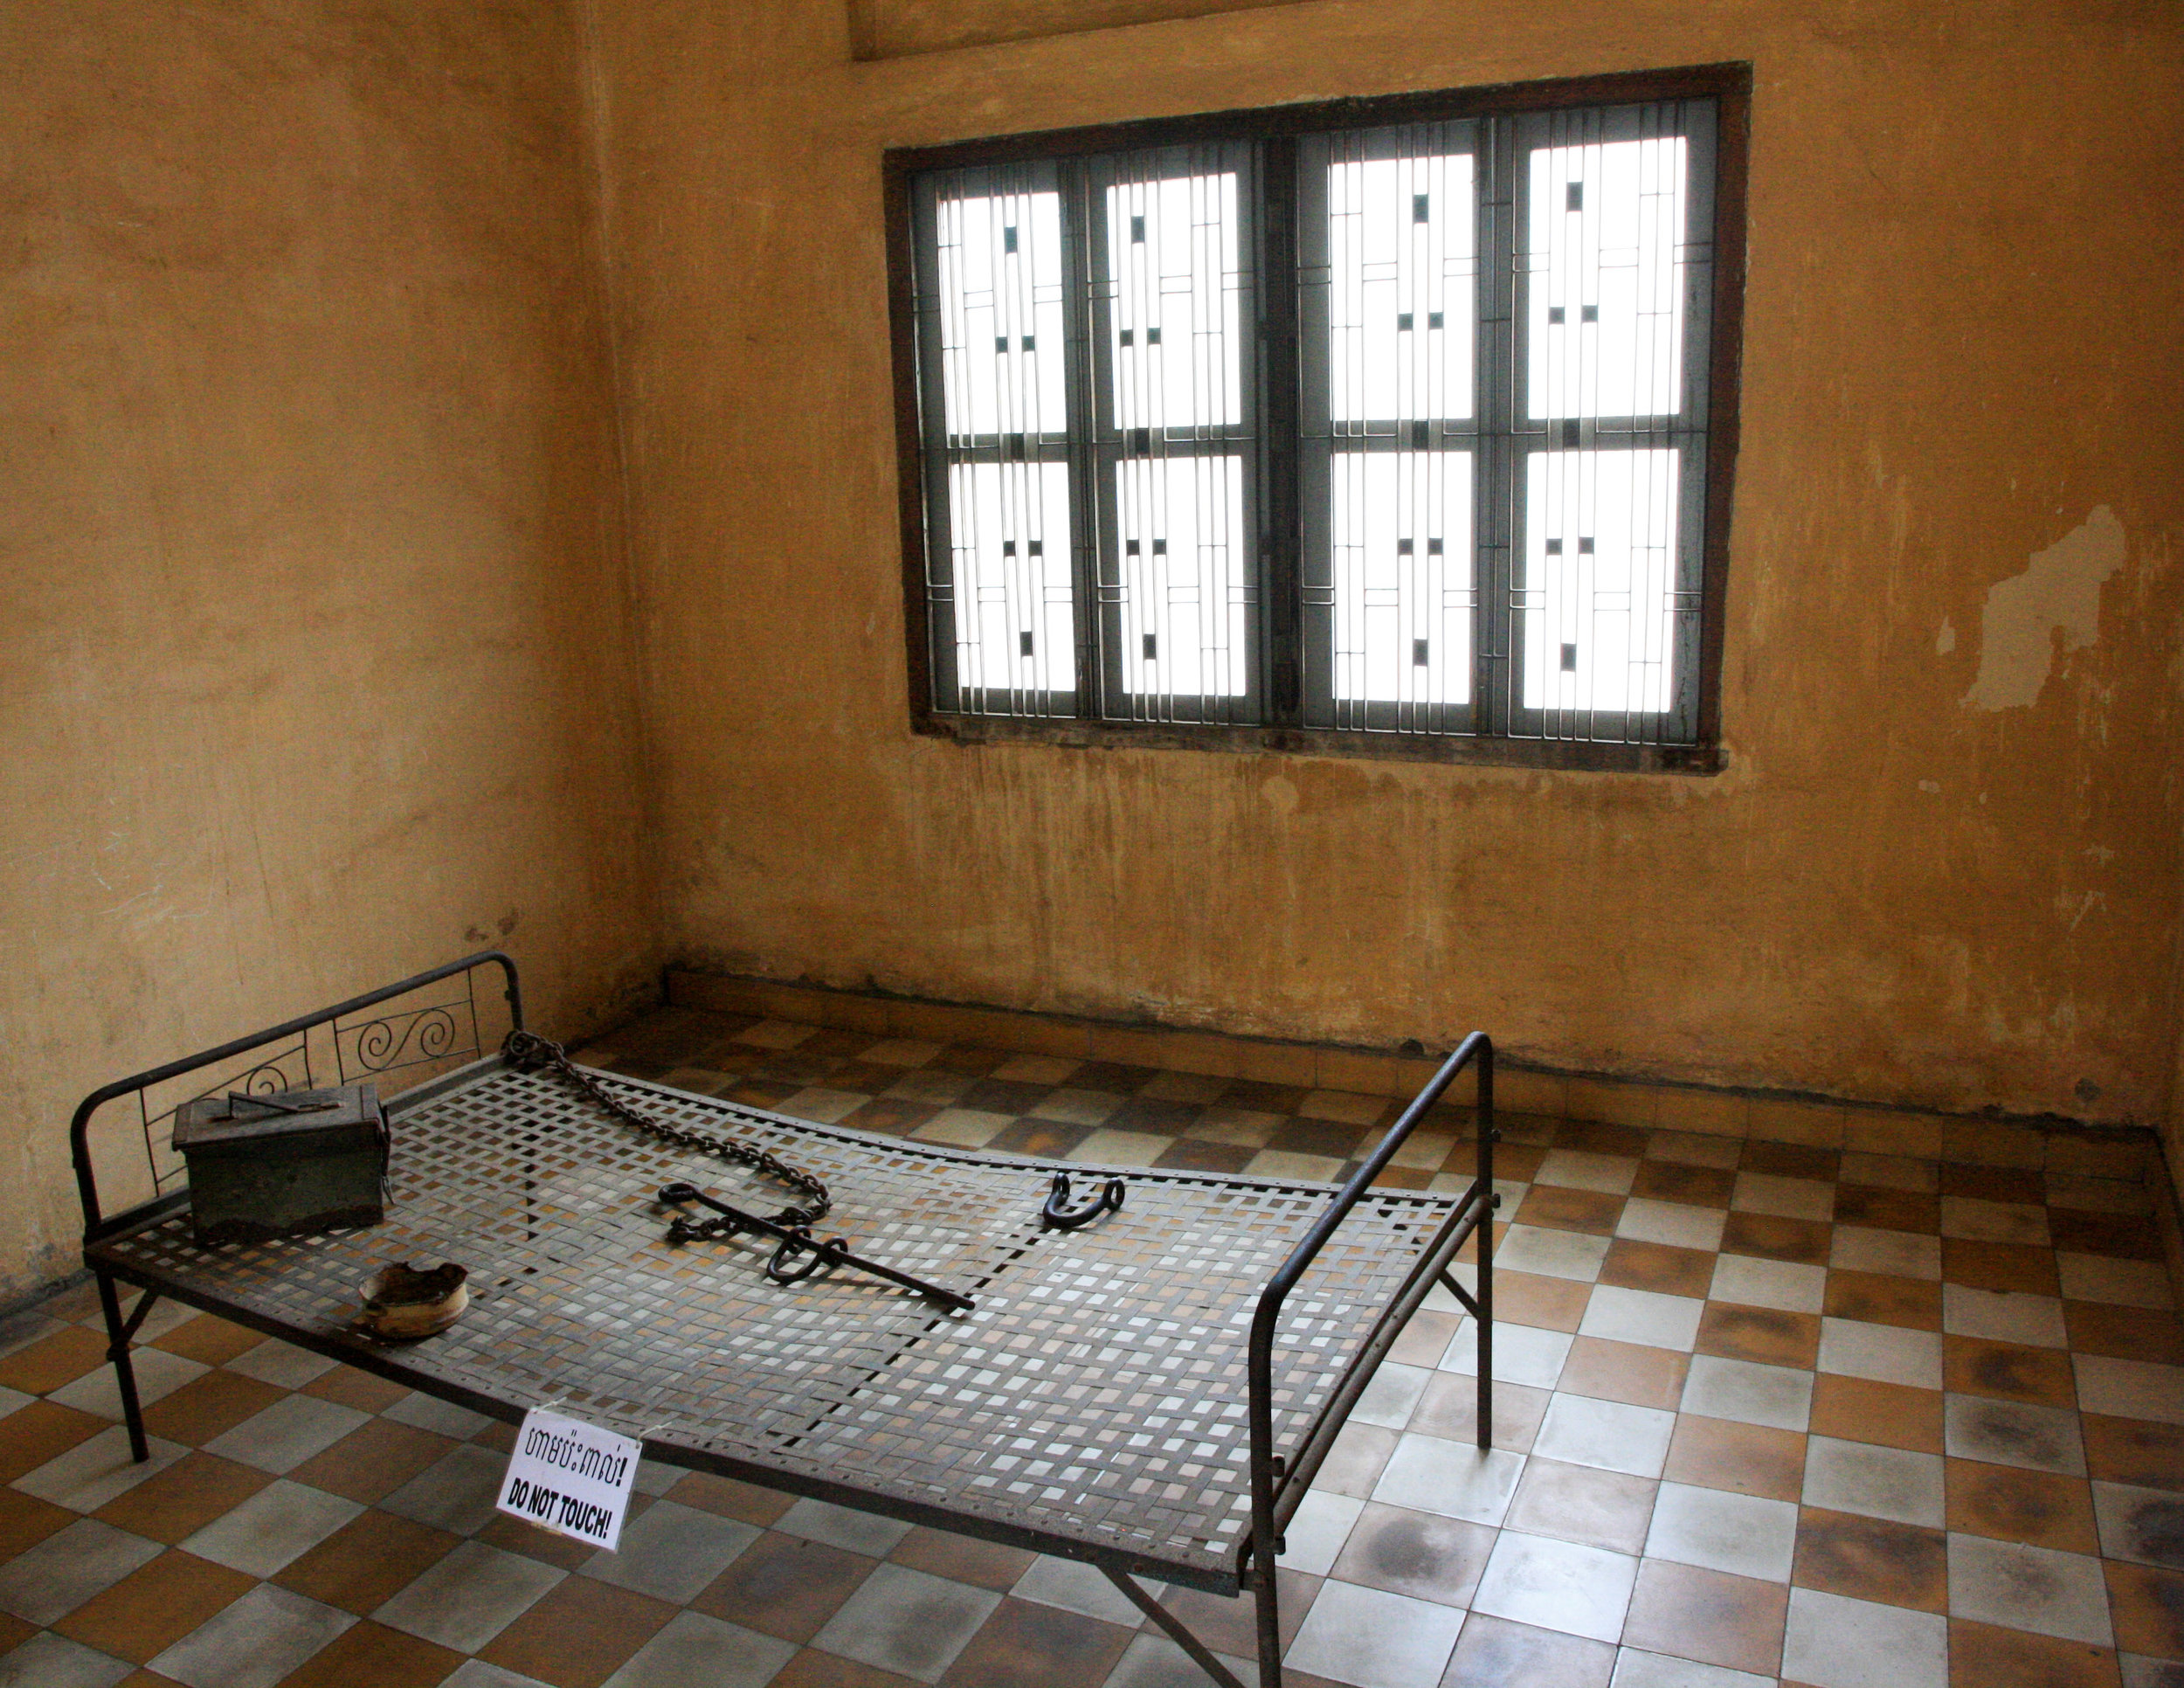 One of the prison cells at Tuol Sleng